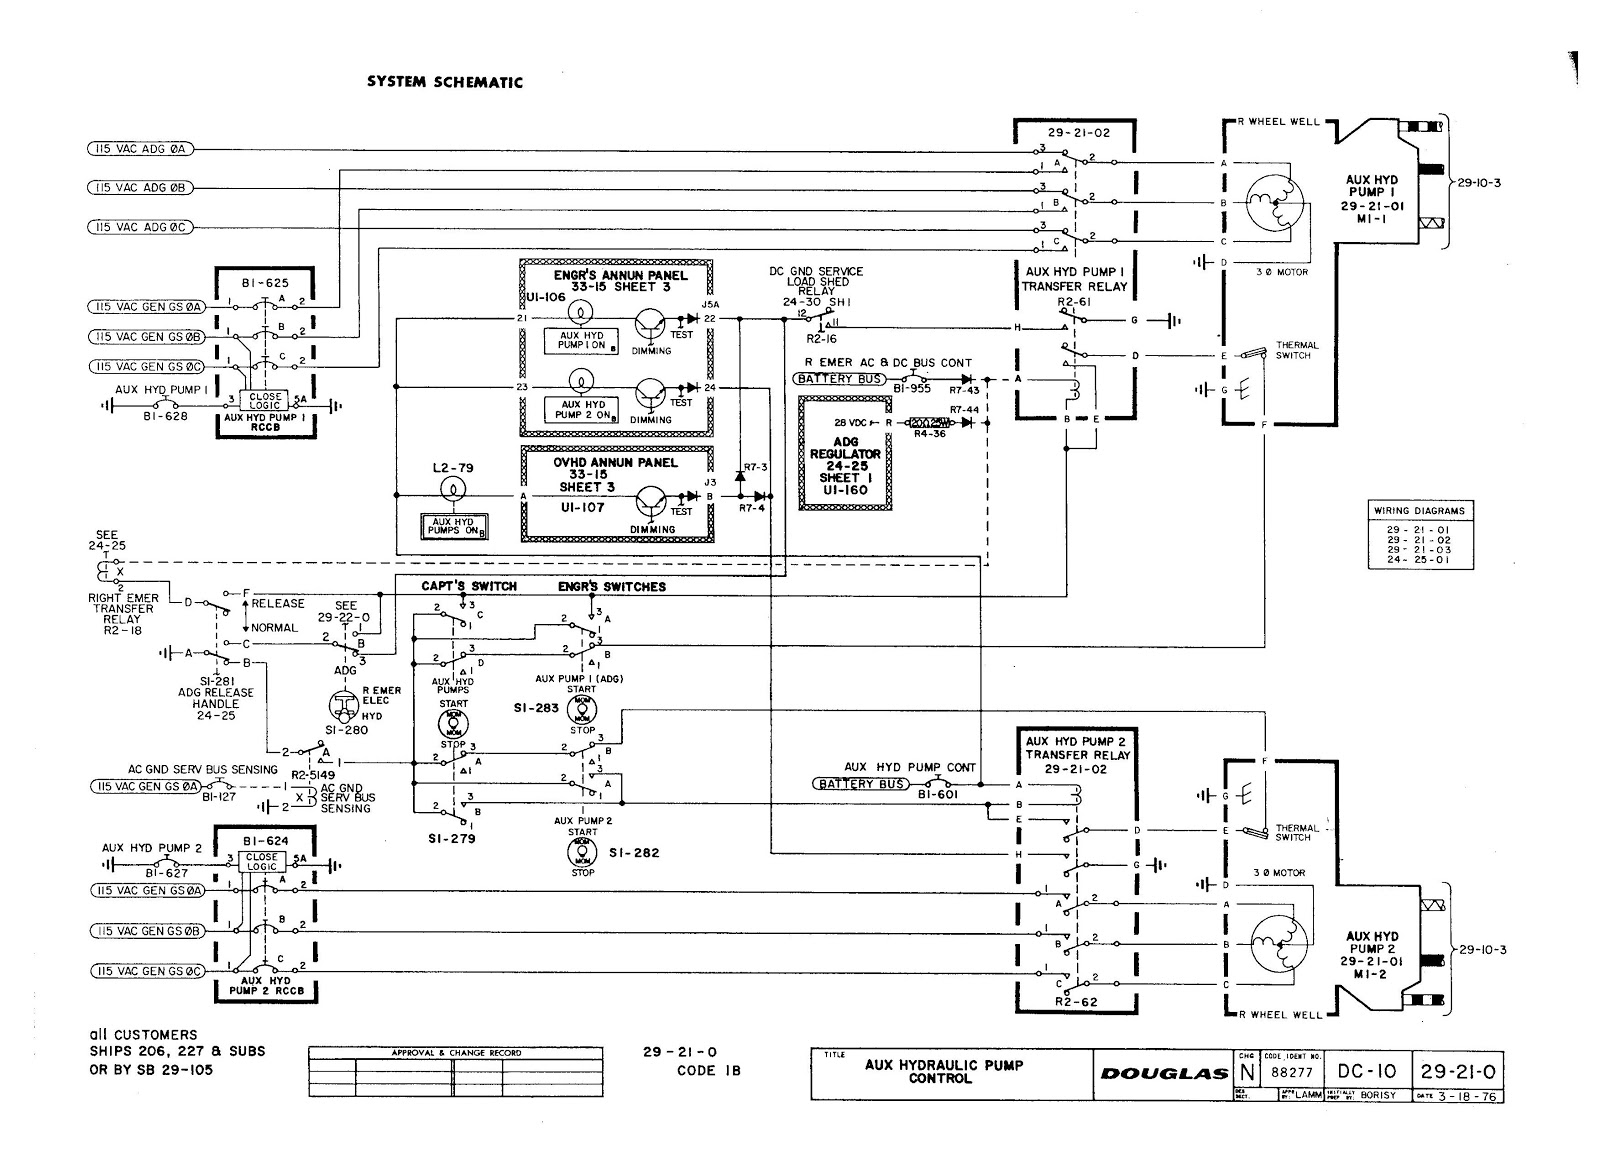 how to read a wiring diagram symbols efcaviation